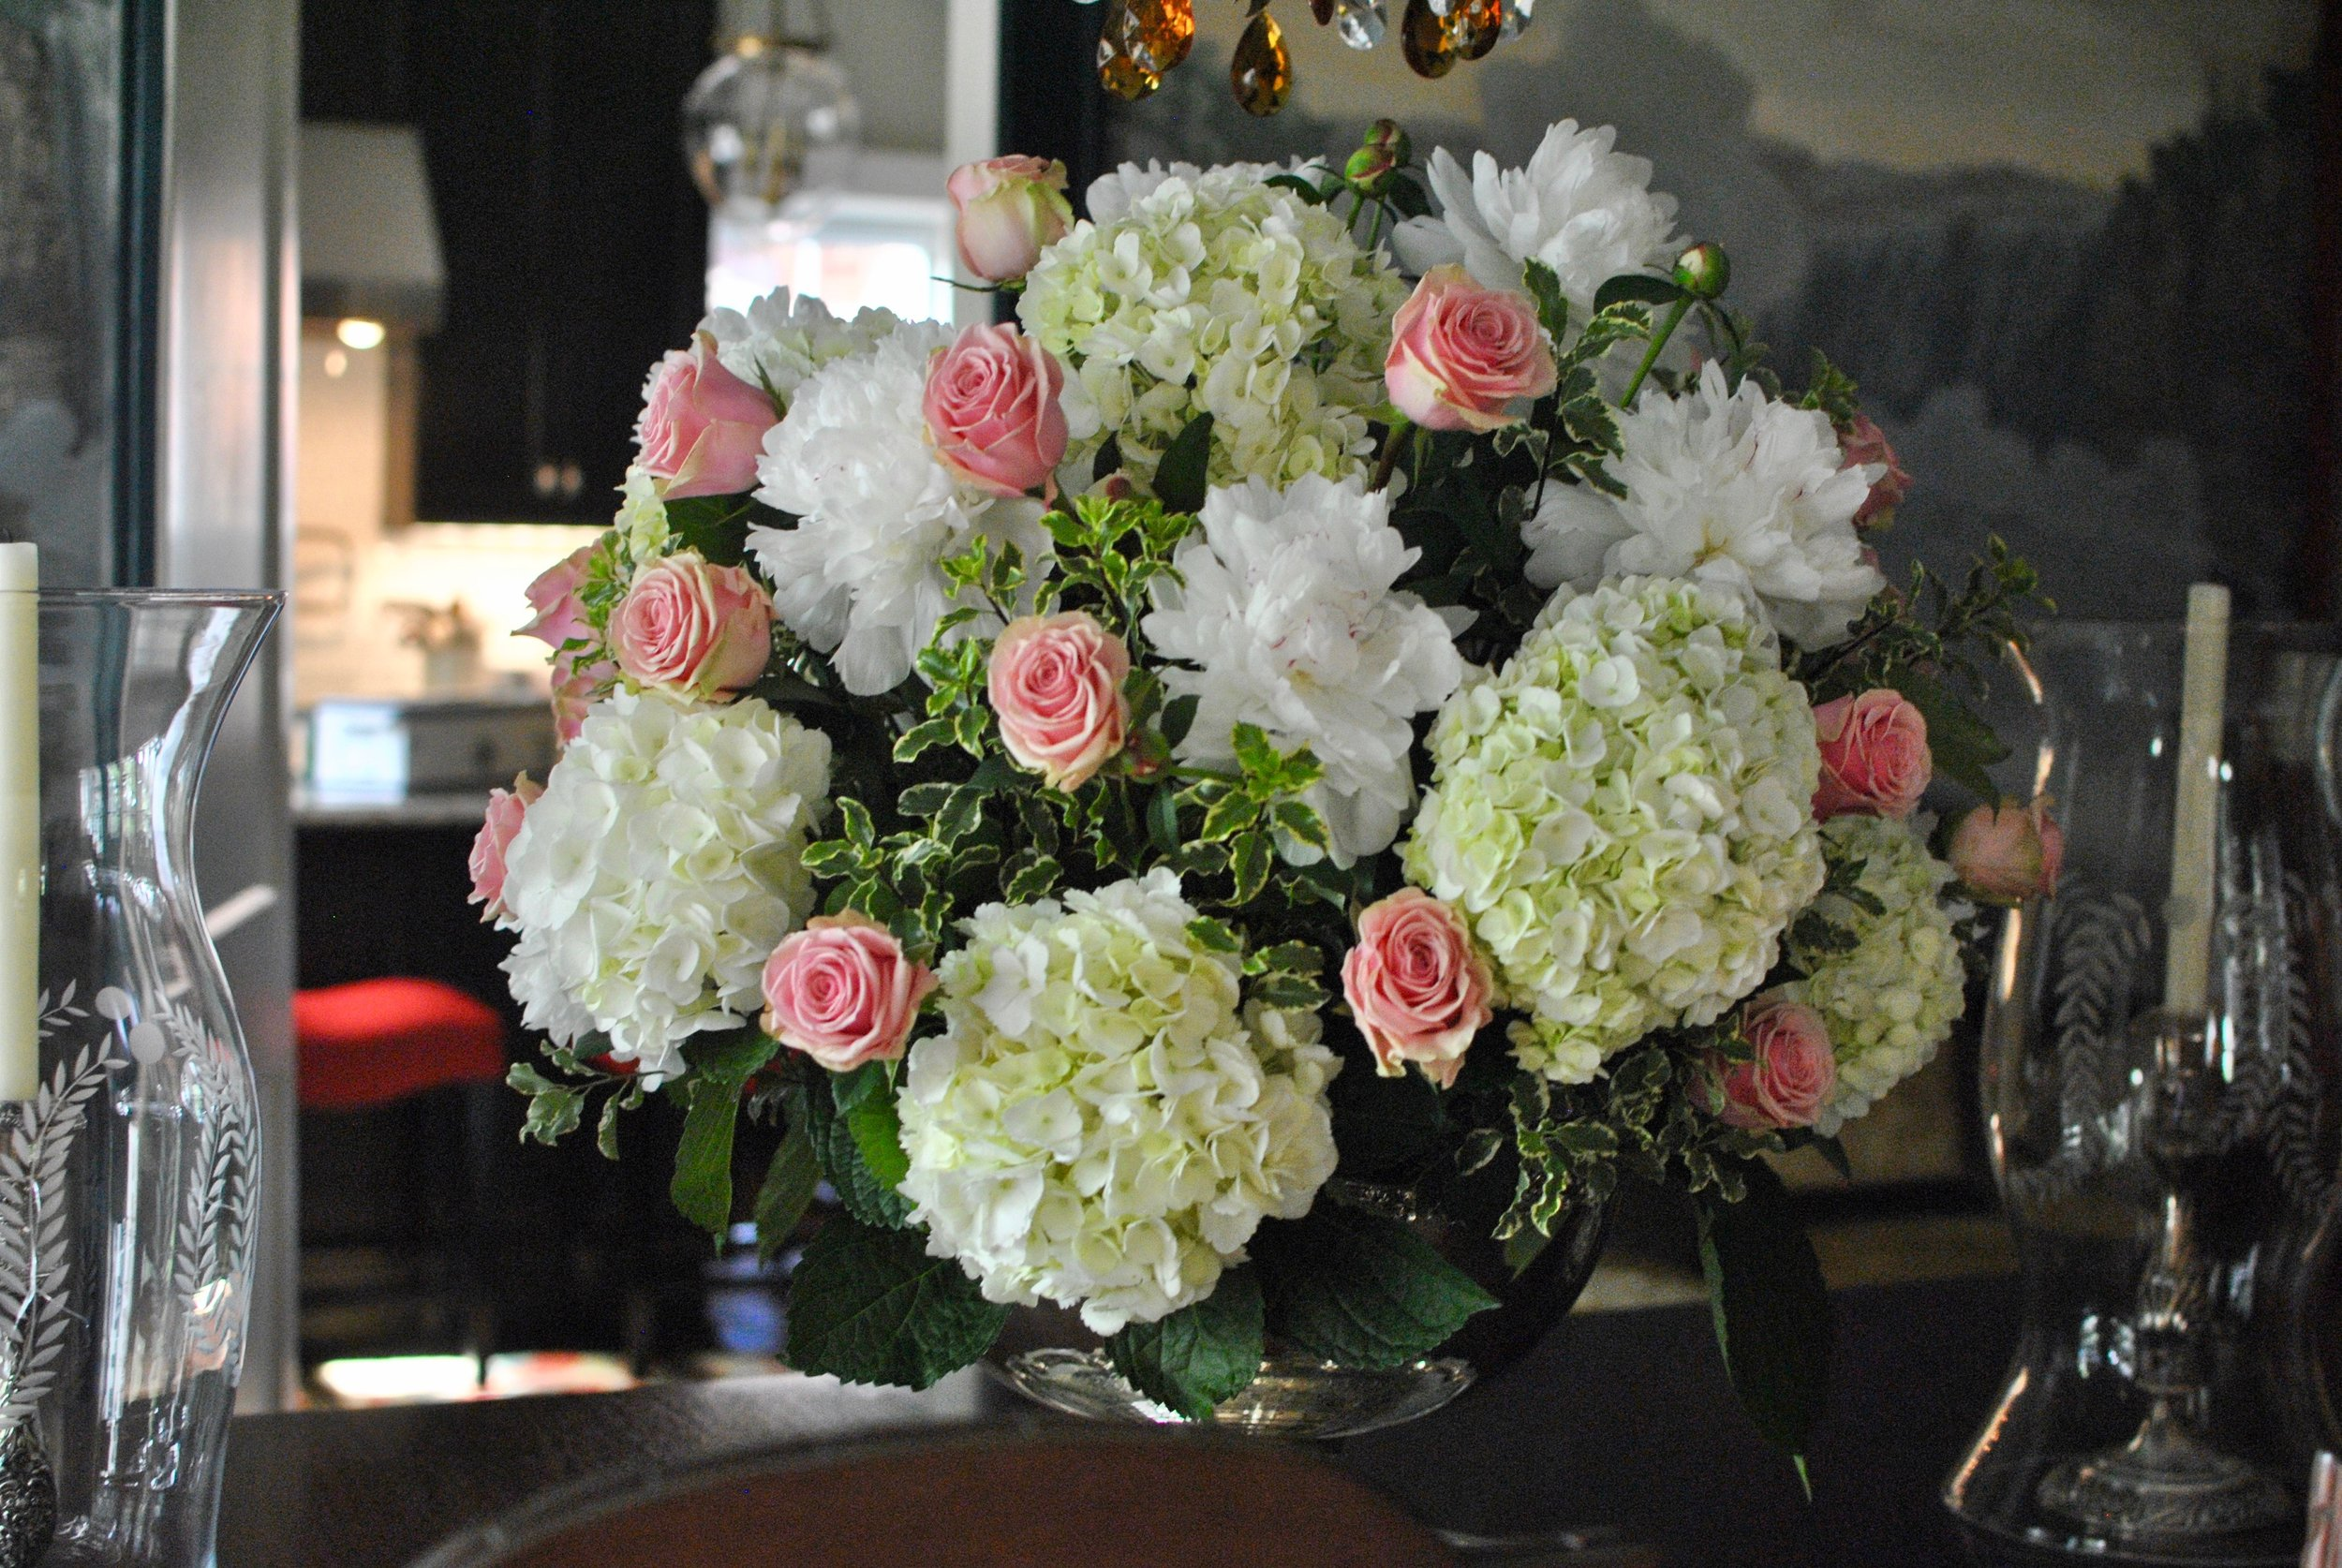 Breathtaking flowers on the dining room table.